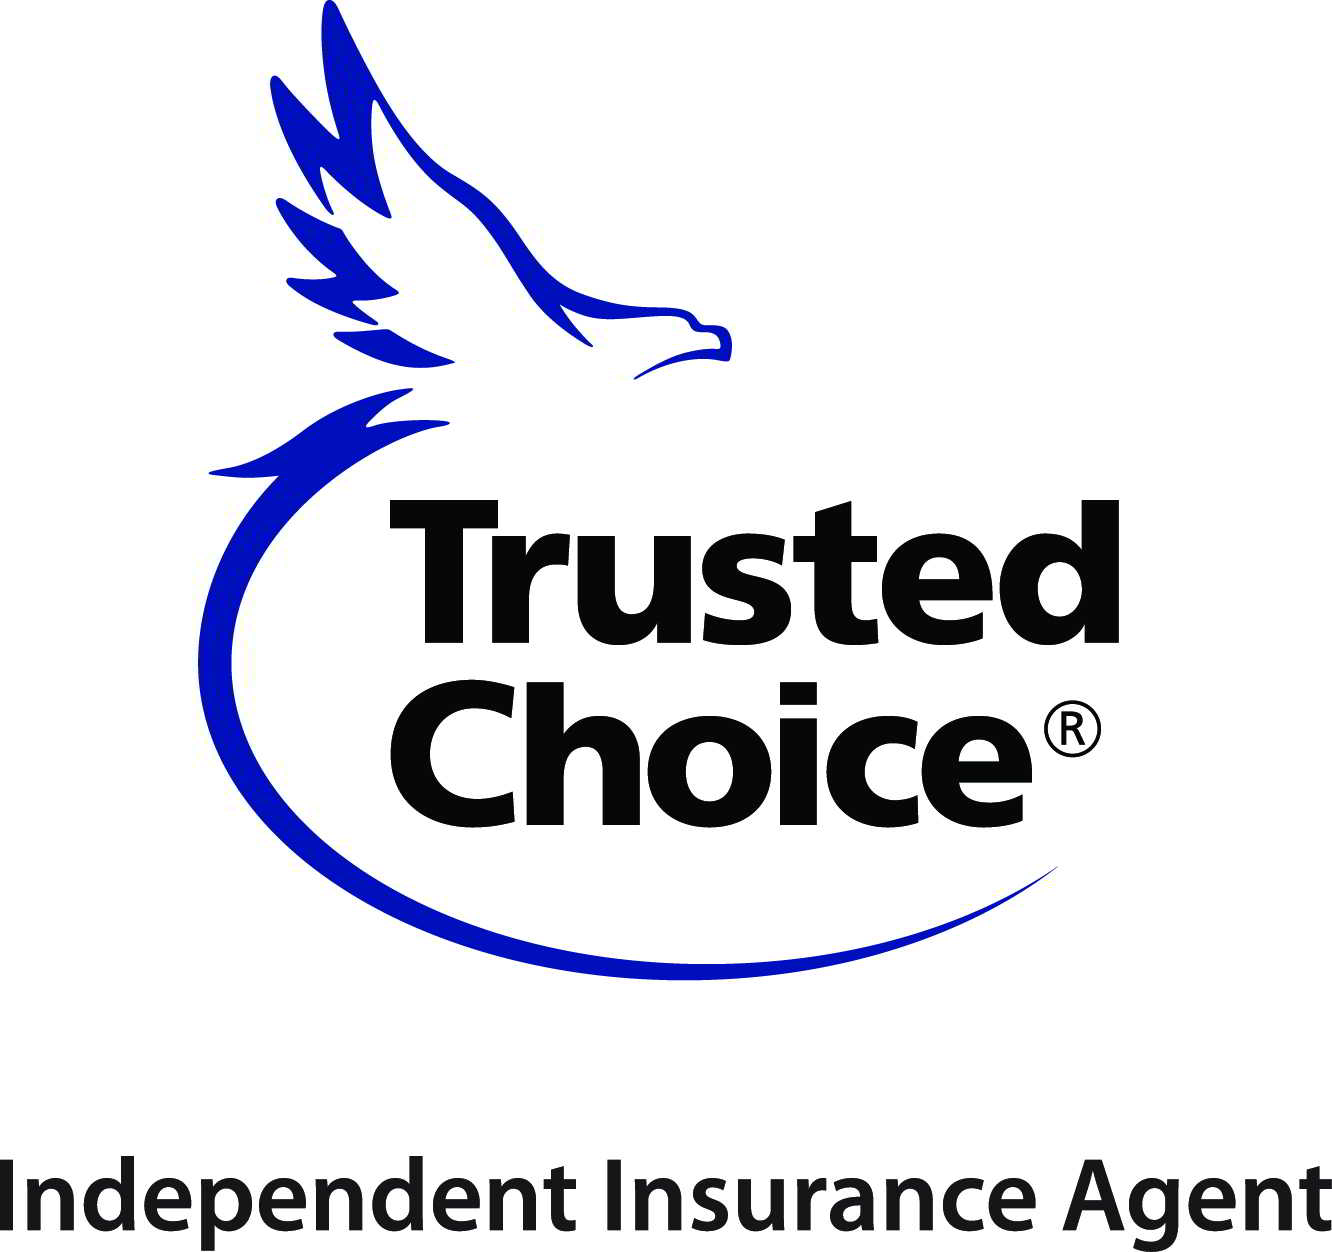 Trusted Choice Agent Joplin